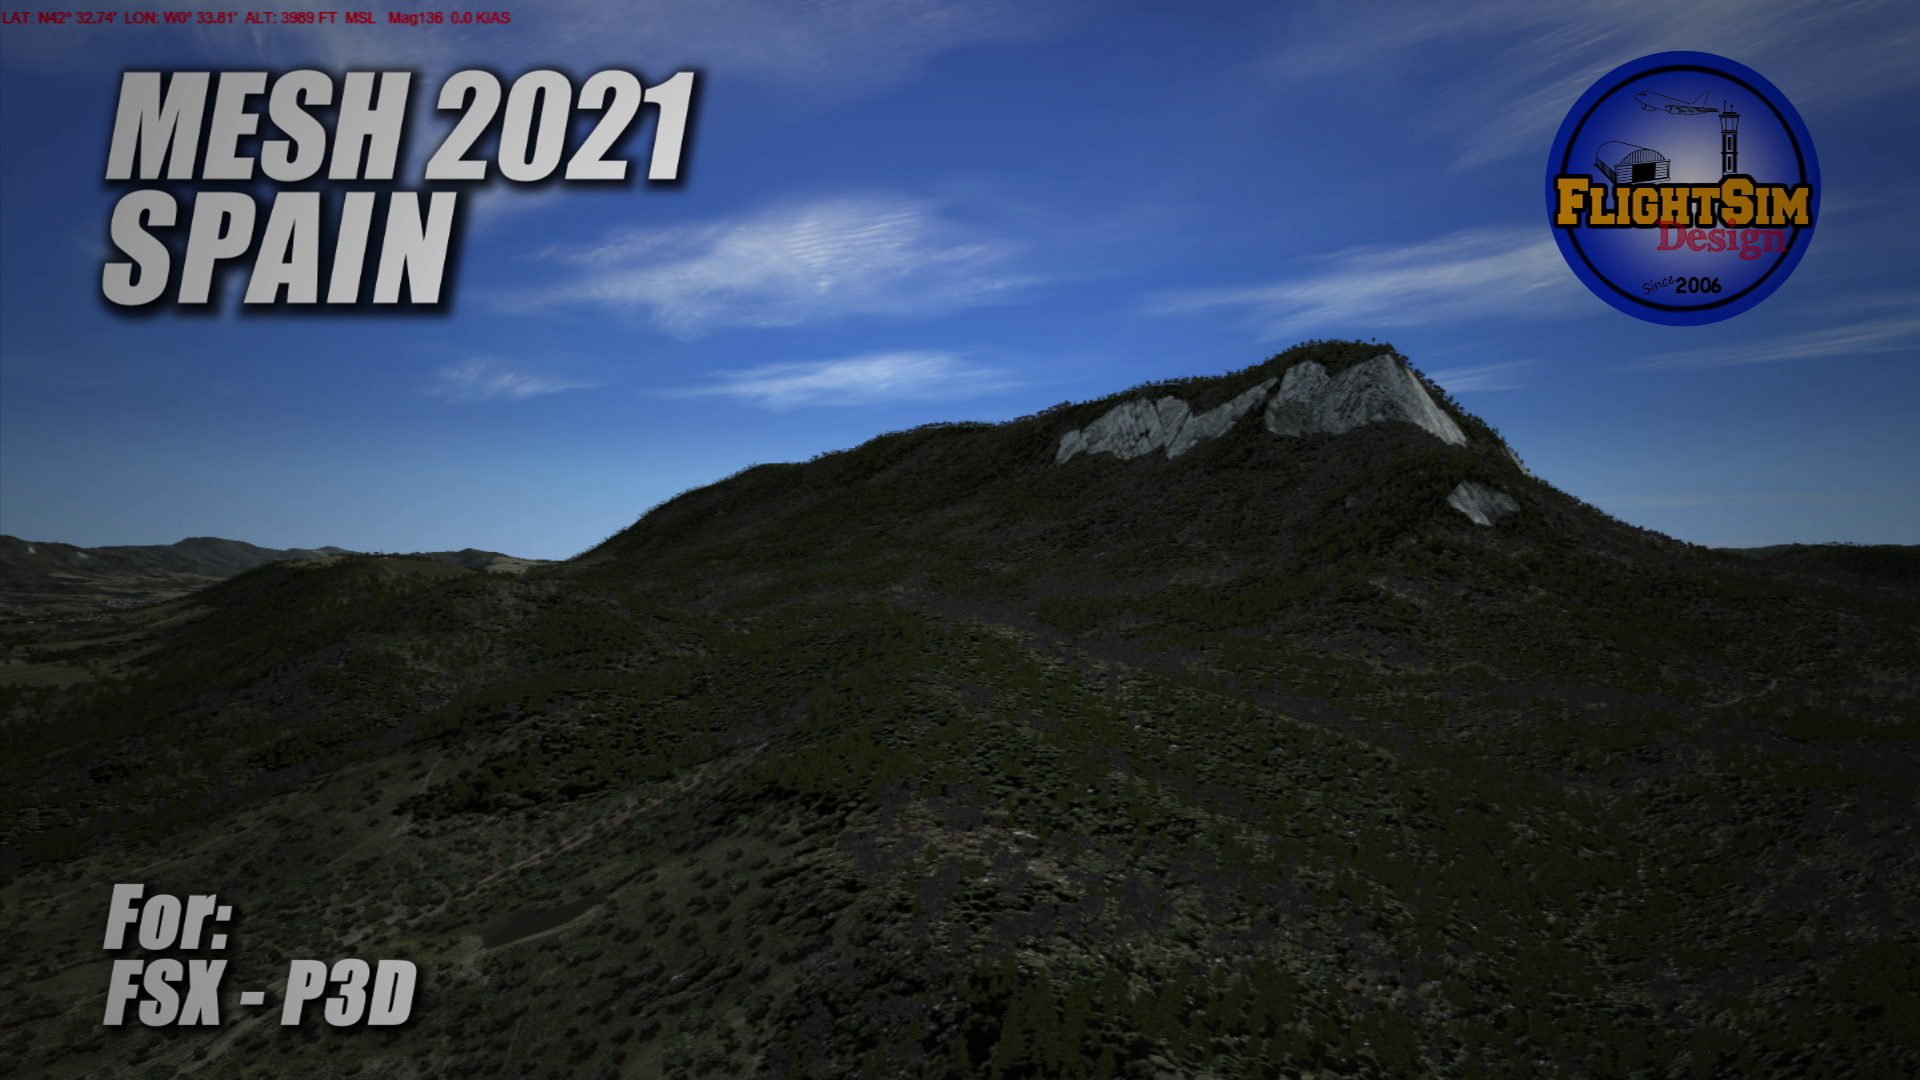 FLIGHTSIMDESIGN CHILE - MESH 2021 SPAIN PORTUGAL FSX P3D